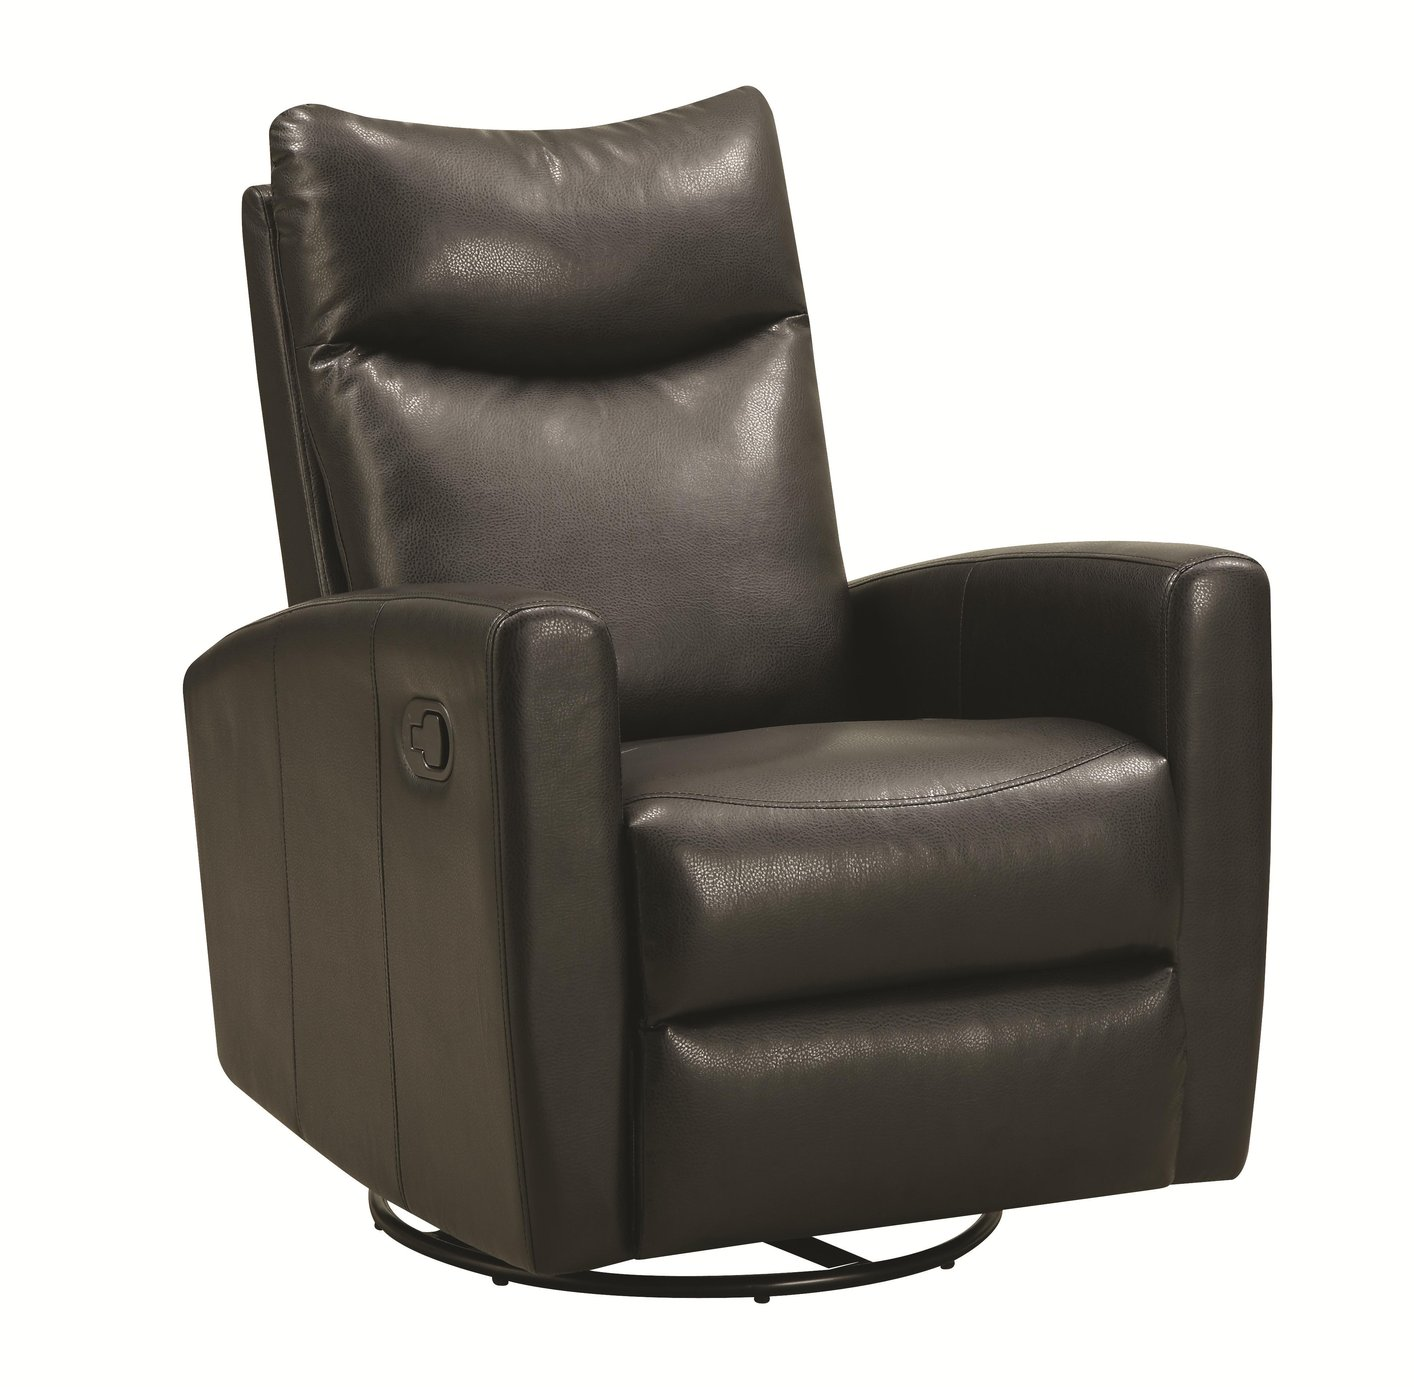 Coaster 600034 Black Leather Swivel Recliner Steal A  : black leather swivel recliner 36 from www.stealasofa.com size 1414 x 1387 jpeg 164kB